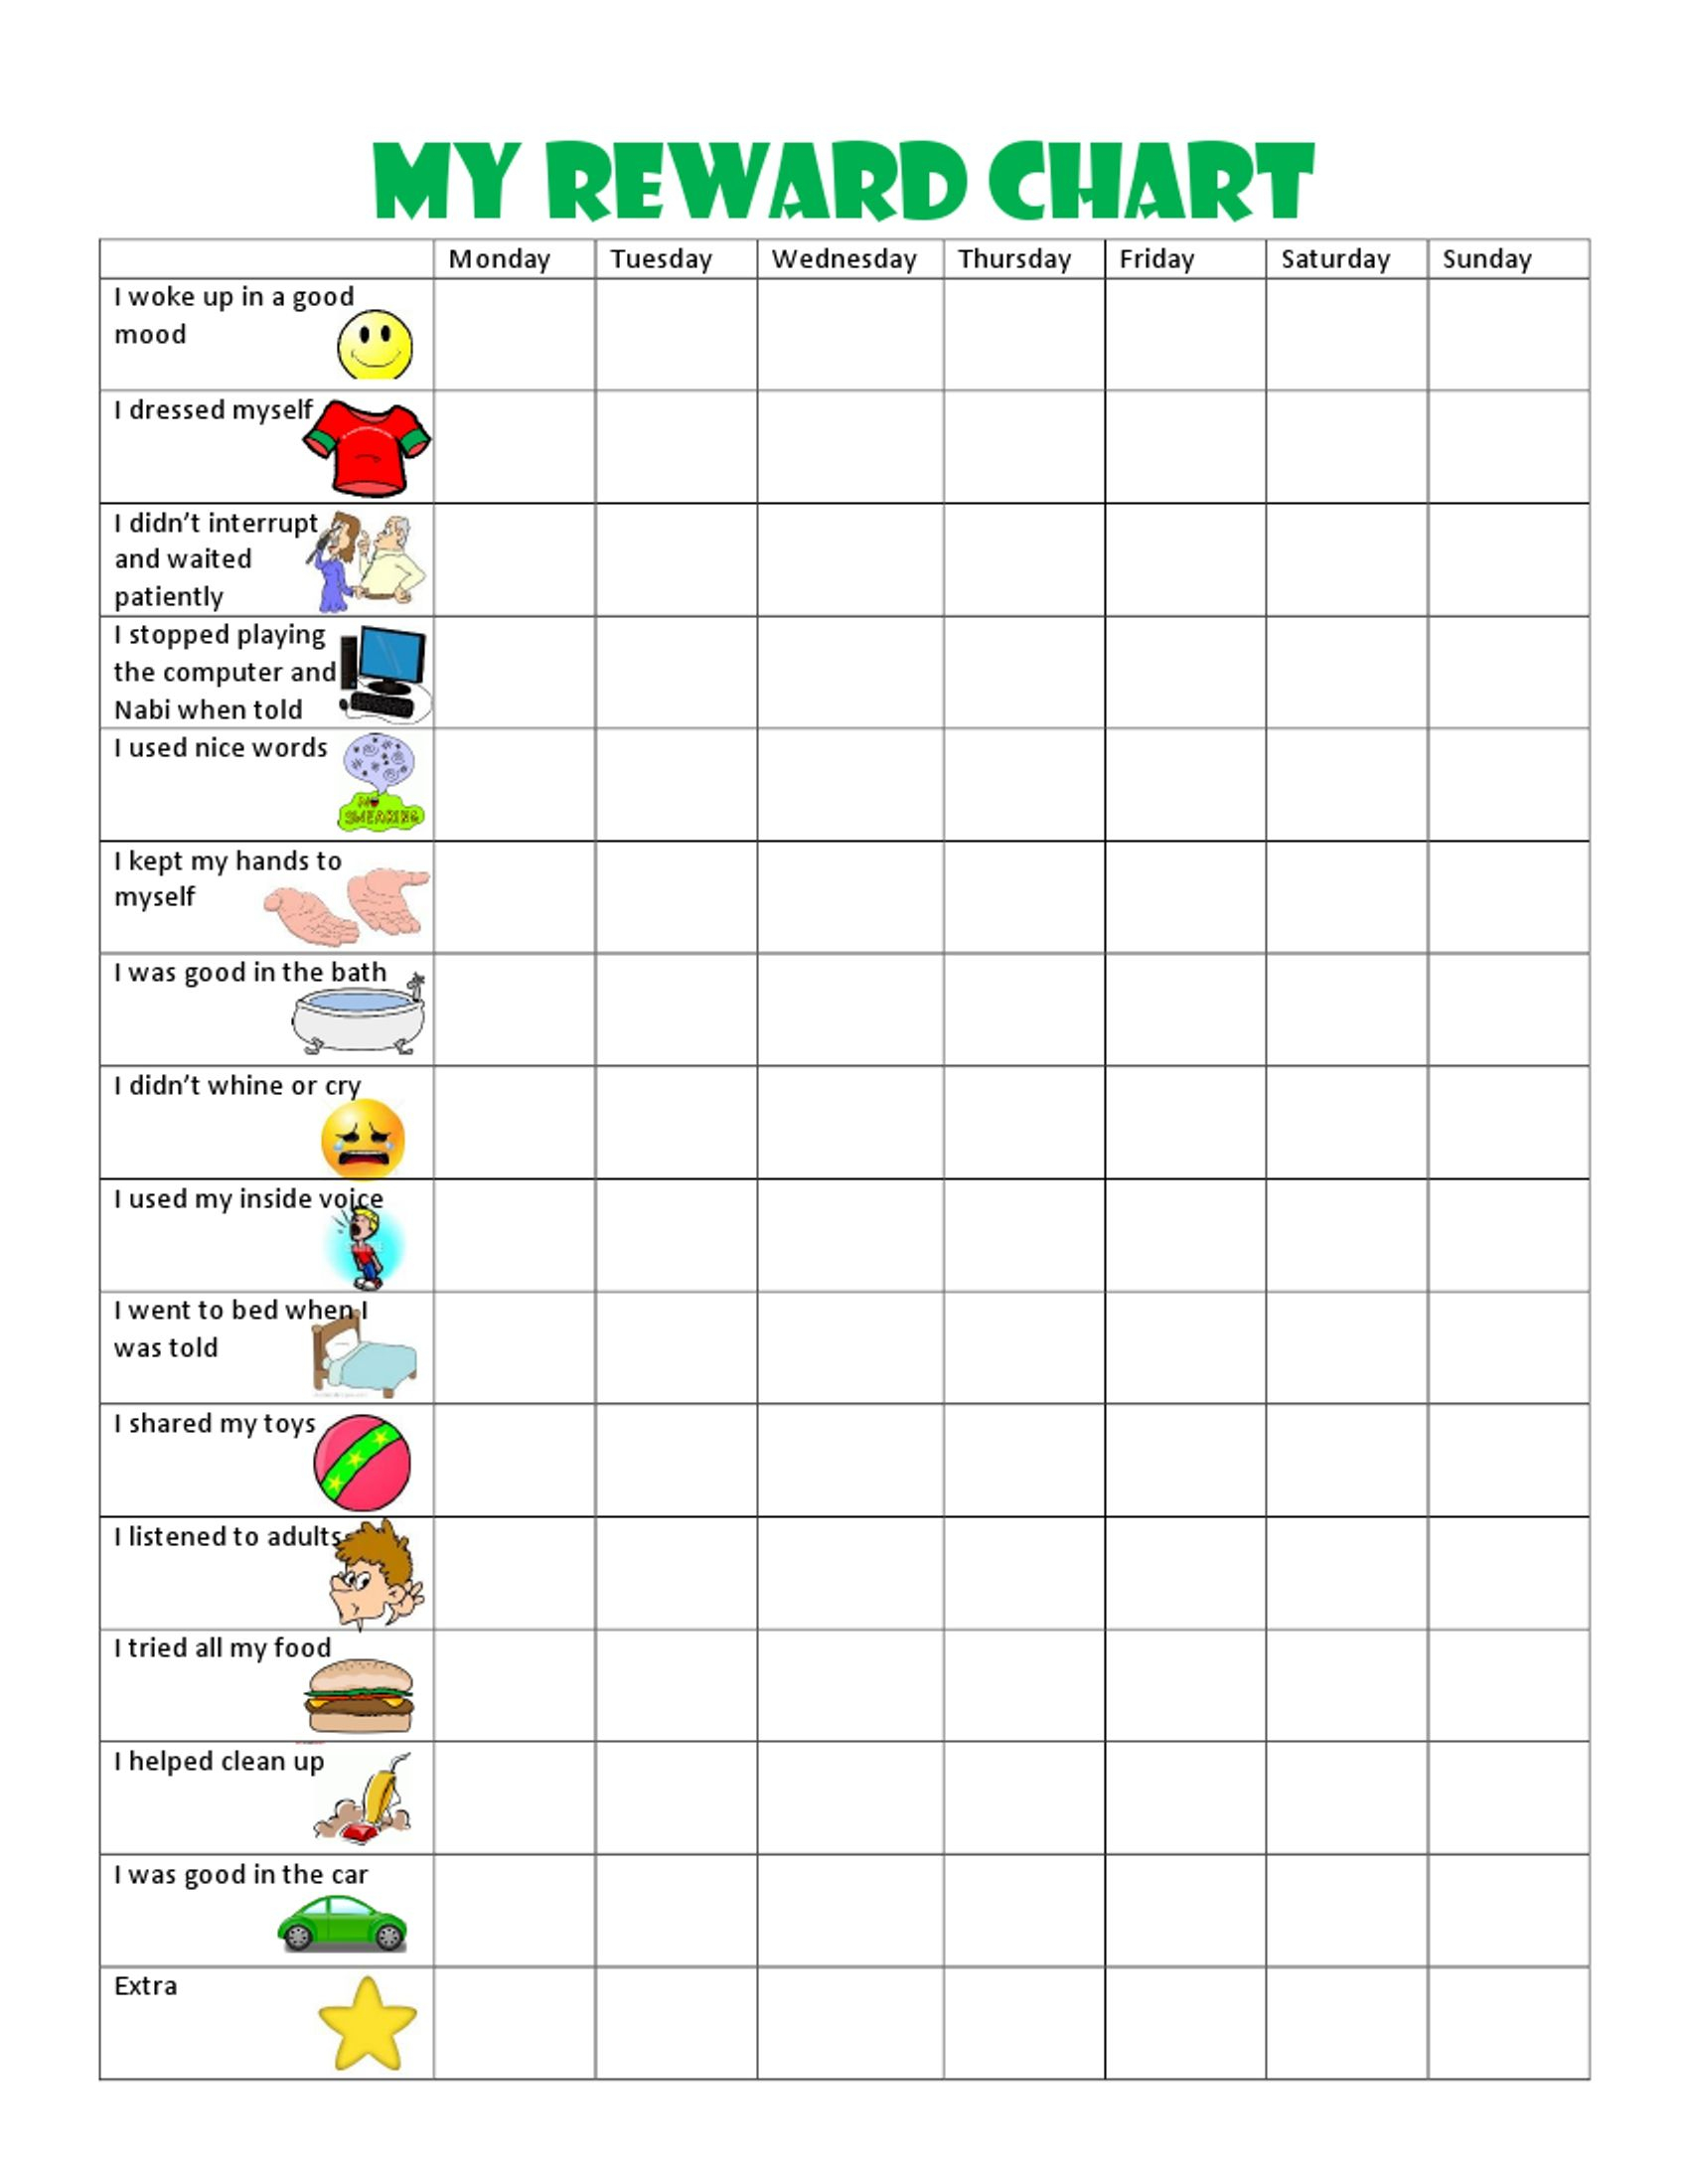 Image Result For Free Printable Behavior Charts For 6 Year Olds - Free Printable Reward Charts For 2 Year Olds